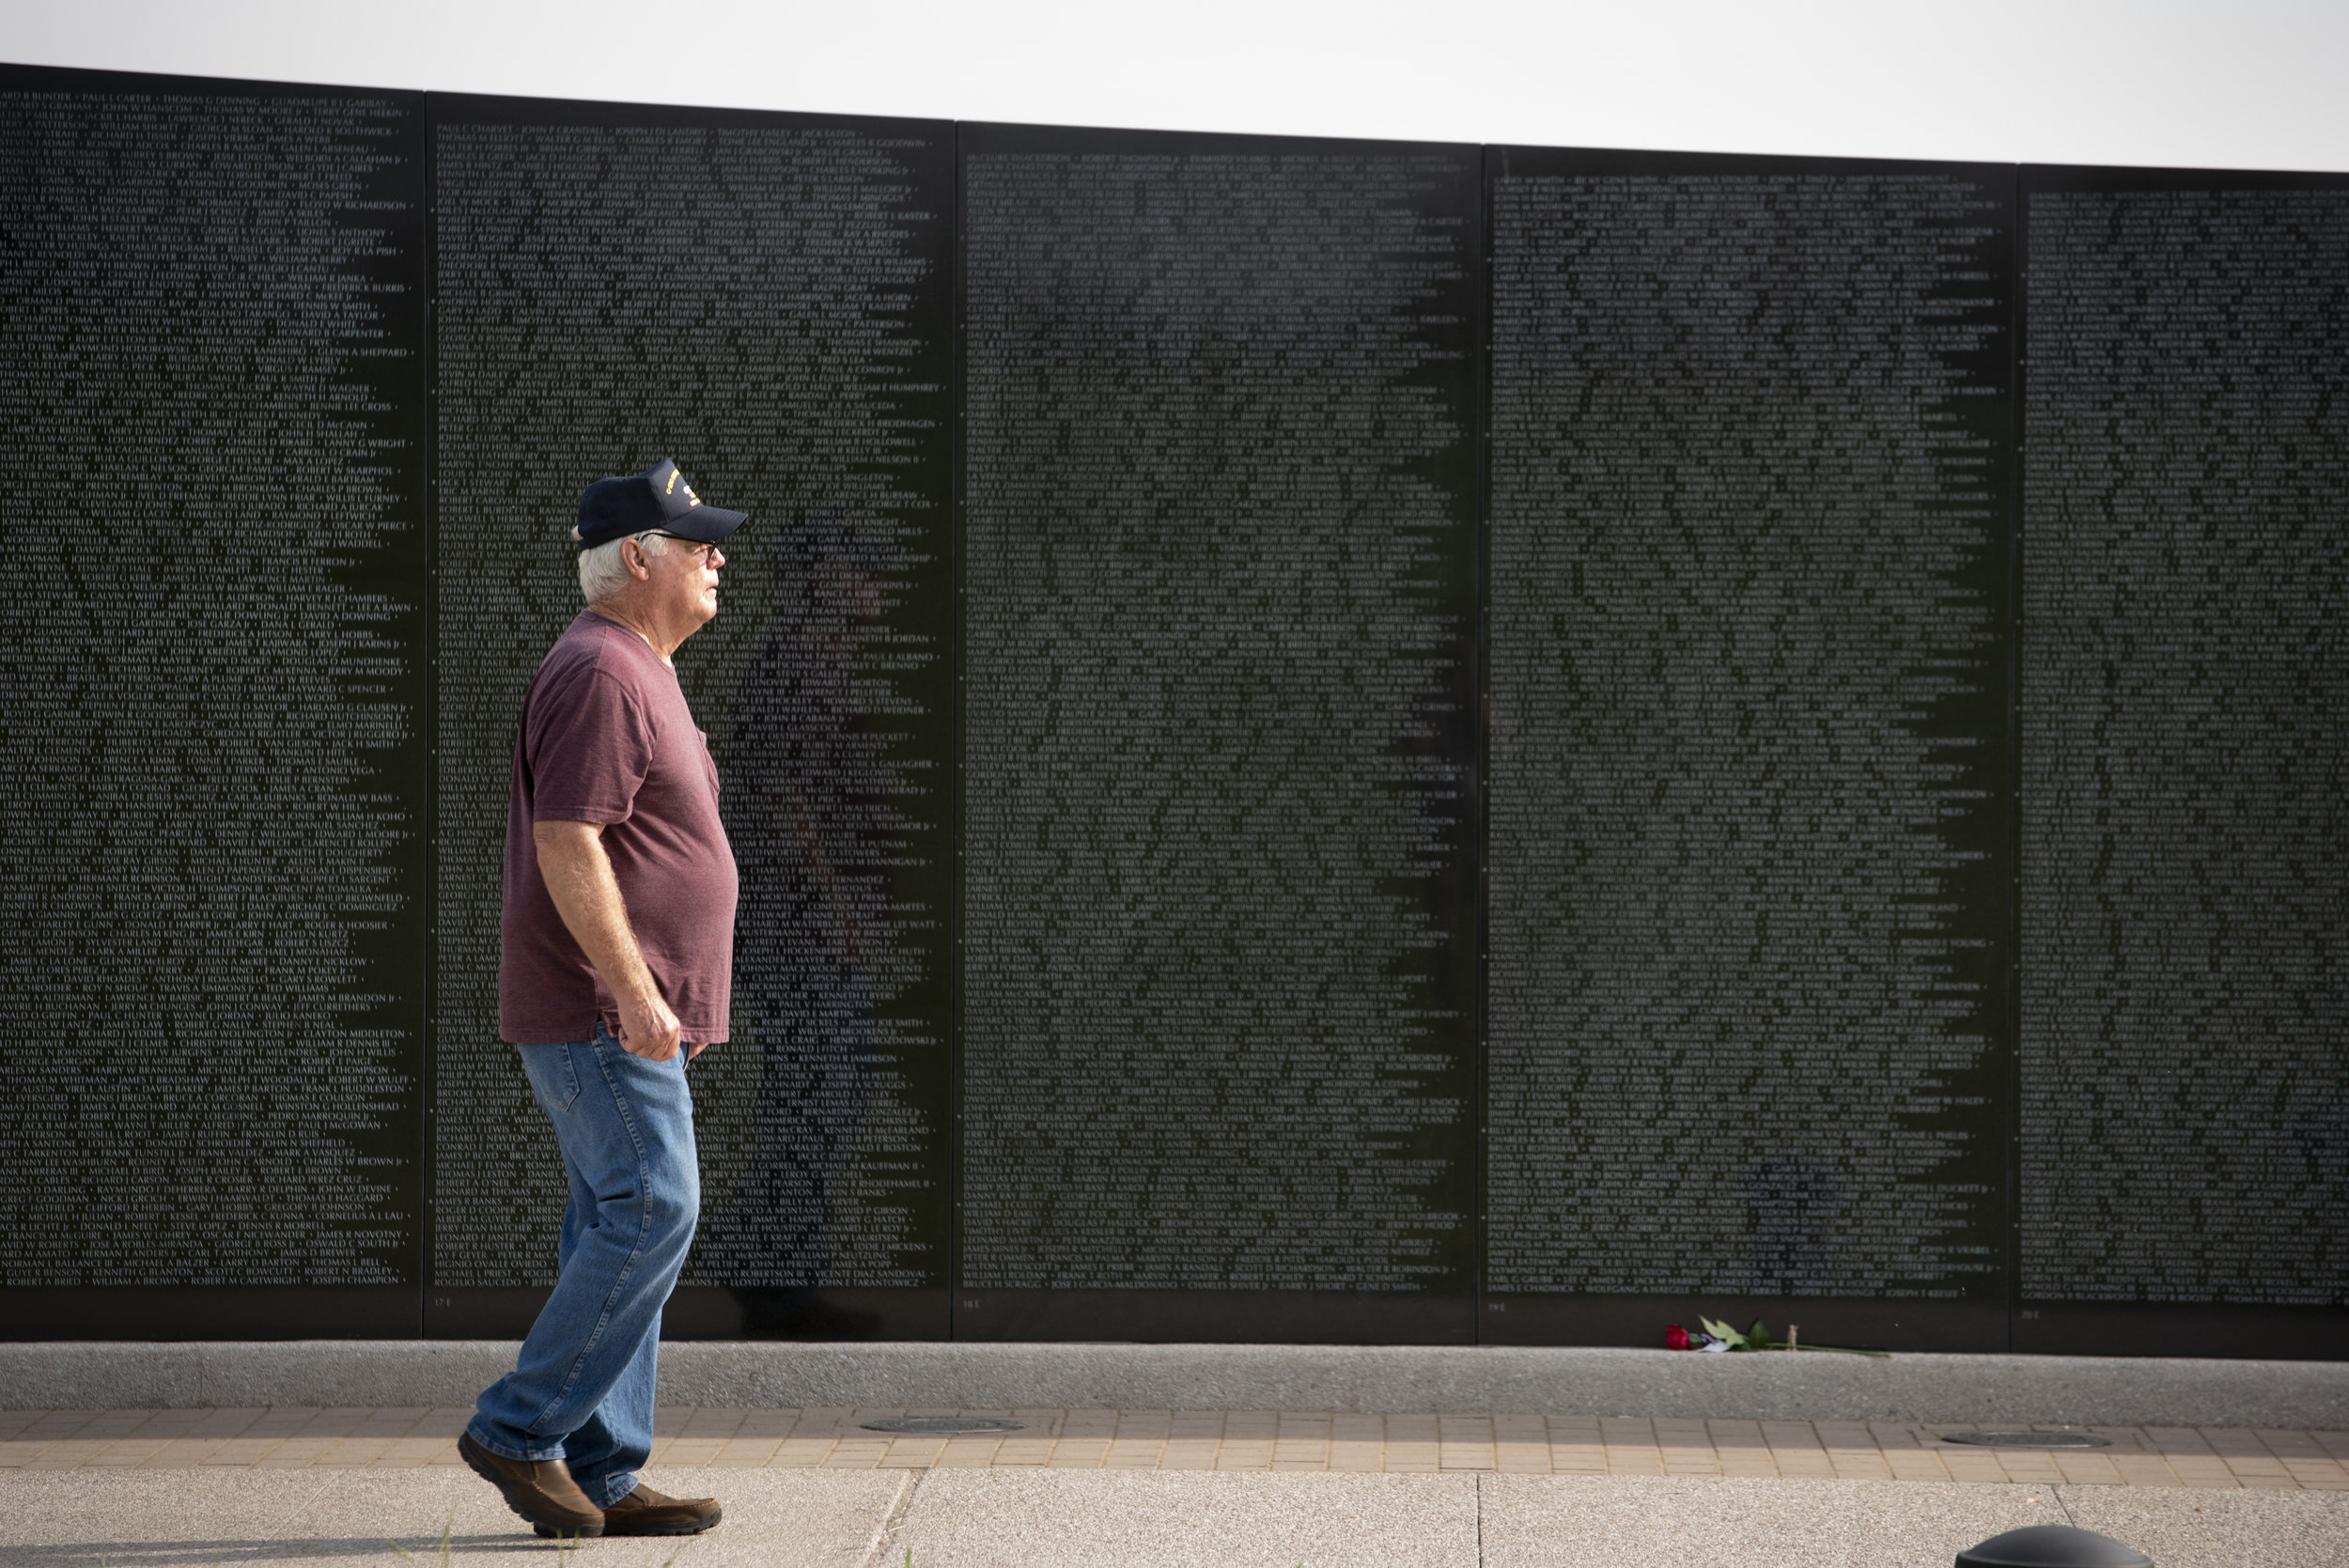 "Vietnam War veteran Jim Boyd of Pinckneyville, Illinois, walks past the names of fallen veterans, as seen on a full-scale replica of the Vietnam War Memorial in Washington, D.C., on Memorial Day on Monday, May 27, 2019, at Missouri's National Veterans Memorial in Perryville, Missouri. The name of Boyd's brother, Roger Boyd, who was killed in May of 1968 while serving in the Marines Corps, is on the wall. ""I get to thinkin' about us growing up,"" he said. ""Both my brothers were gone in the service so I didn't see them that often. And the last time we got together, I was in high school and I just think about us going camping and stuff like that. Good memories."" Jacob Wiegand 